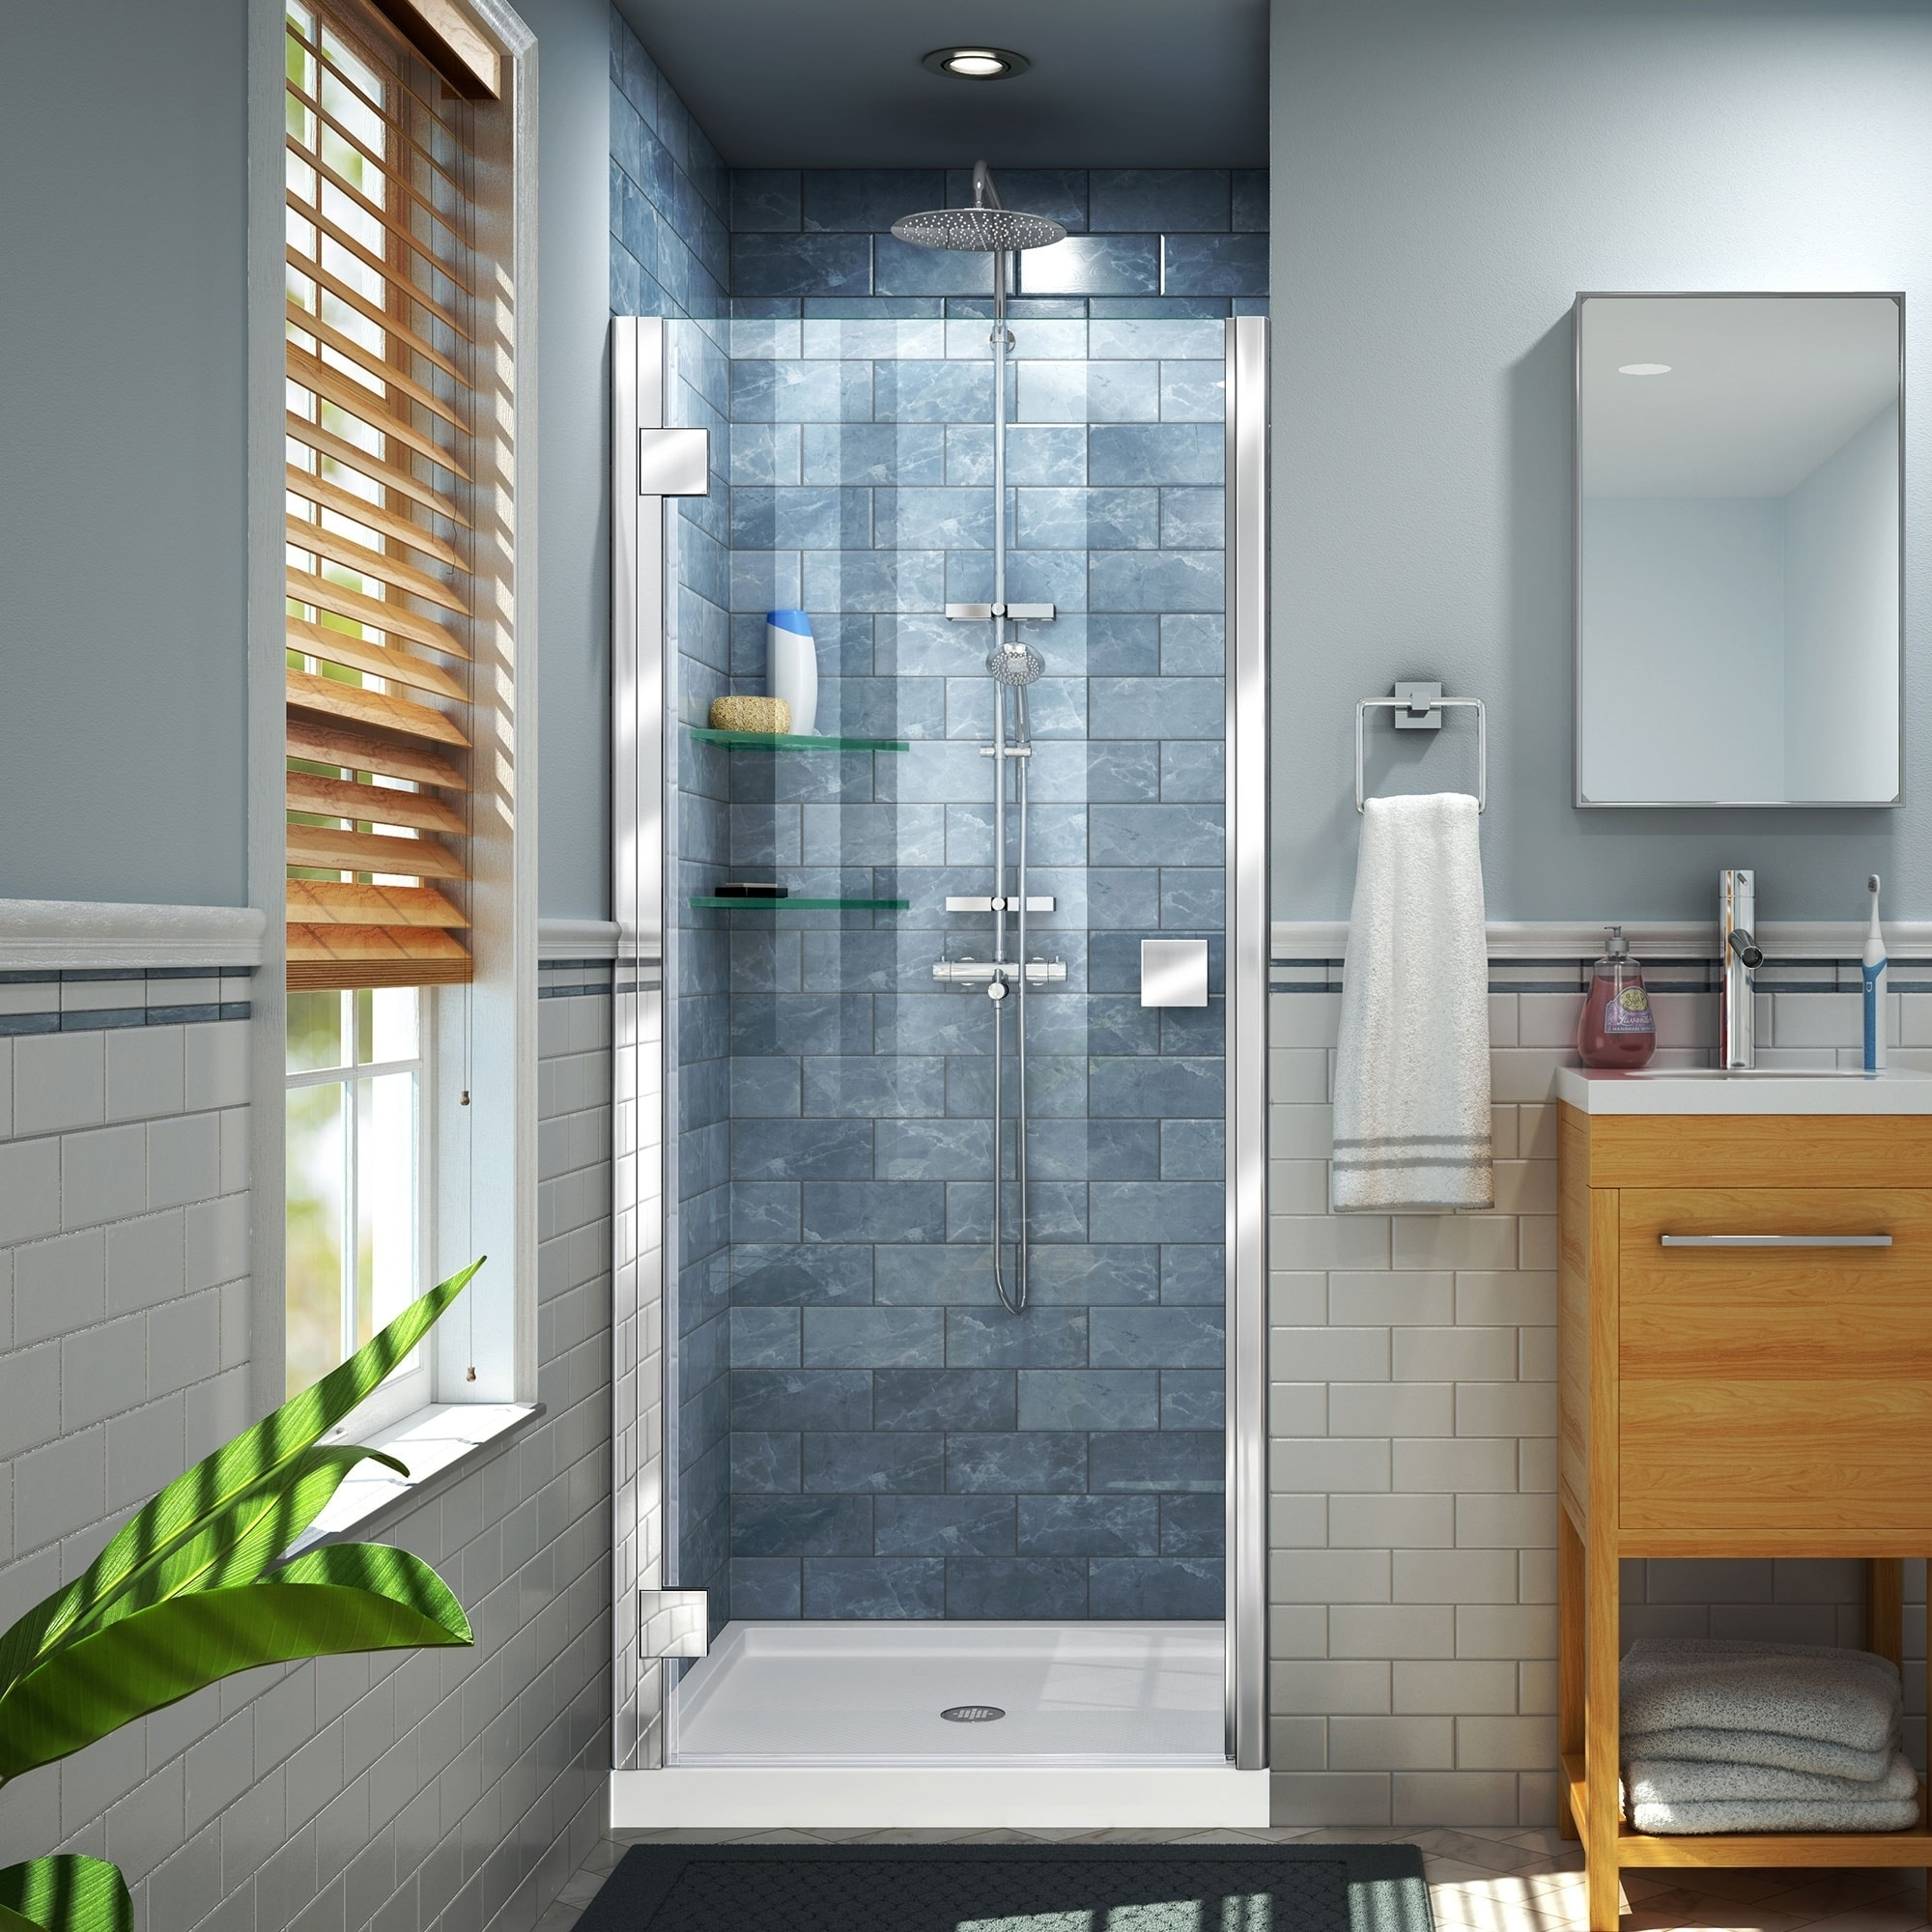 DreamLine Lumen 36 in. D x 42 in. W by 74 3/4 in. H Hinged Shower Door and Base Kit (Black - Nickel Finish)